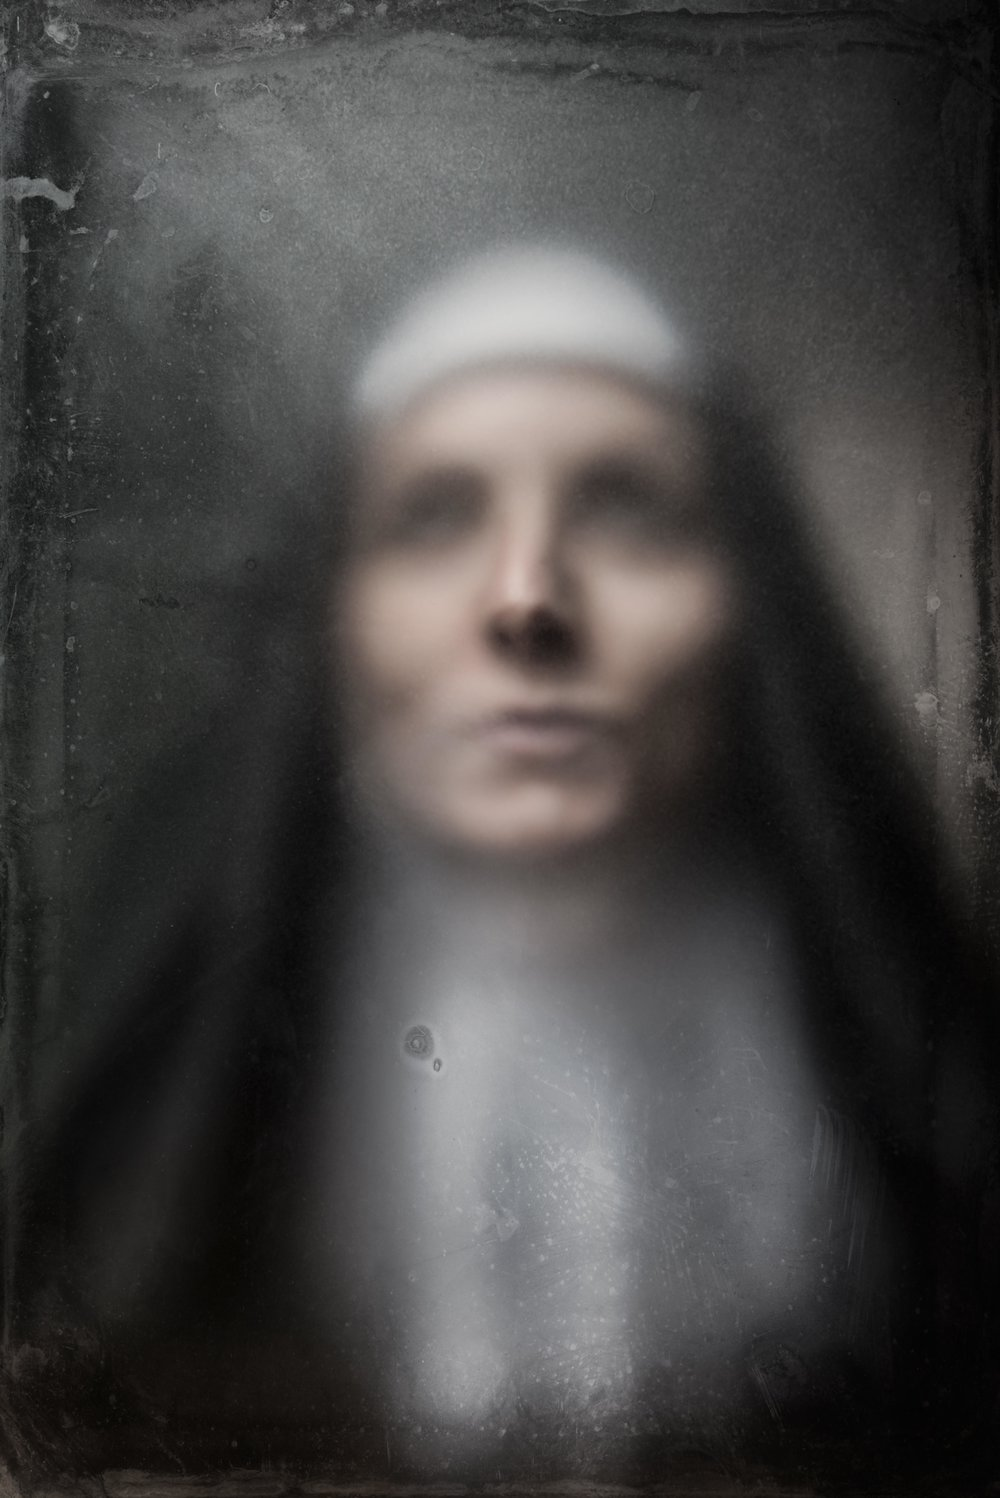 austin-trigg-halloween-spooky-portraits-Nun-lighting-project-personal-scary-makeup-costume-old-fashion-style-fog-glass.jpg